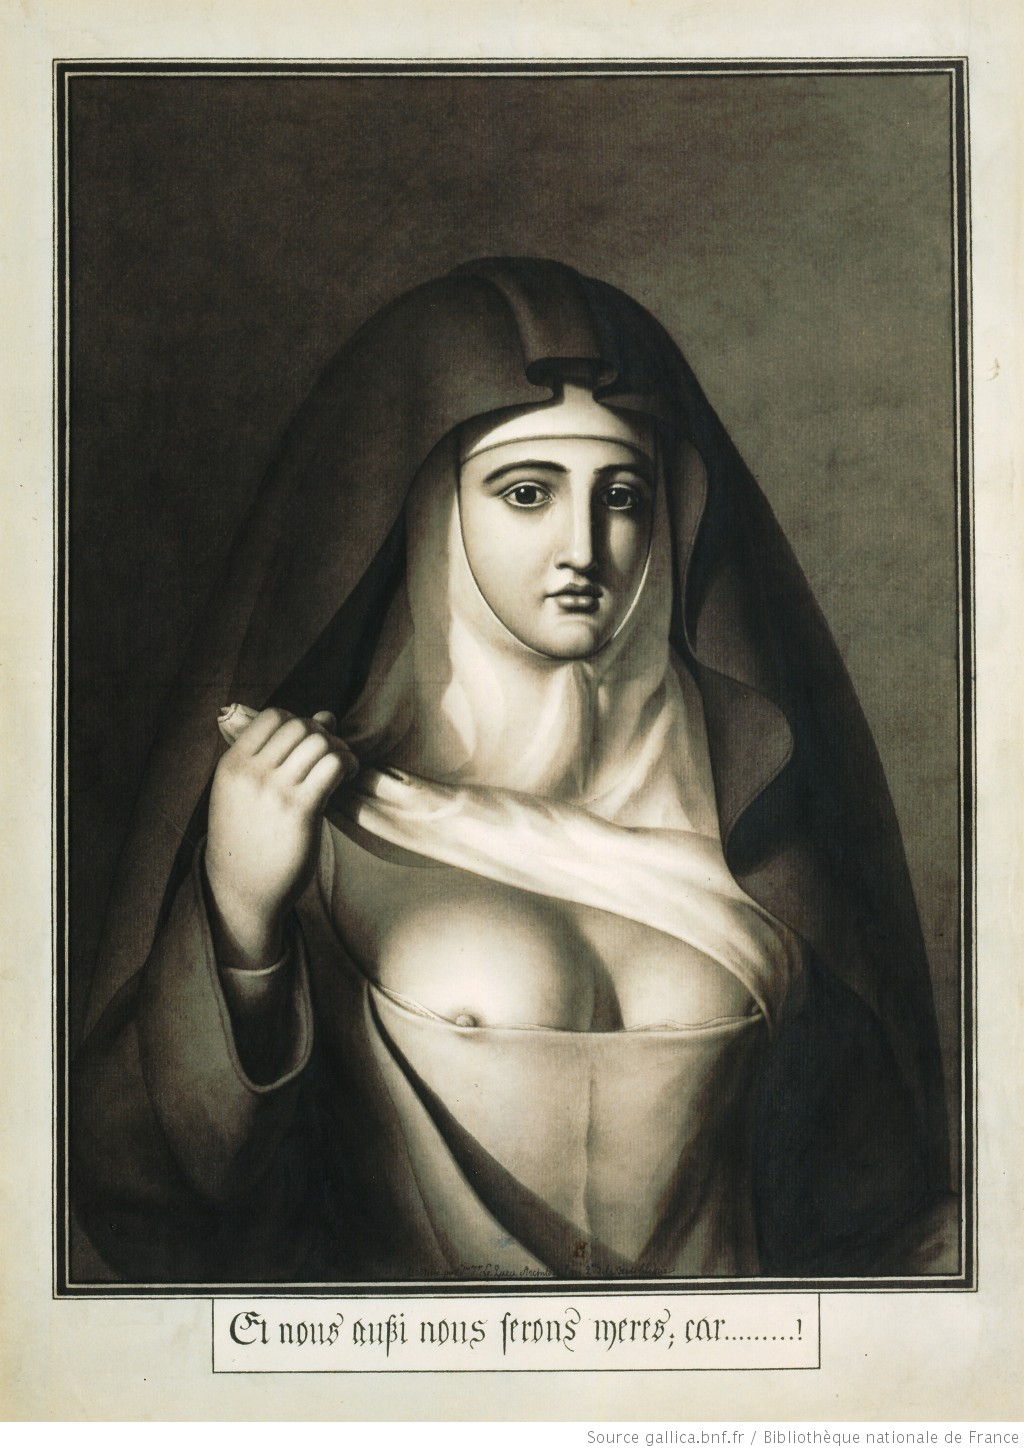 Drawing of a nun showing one of her breasts.